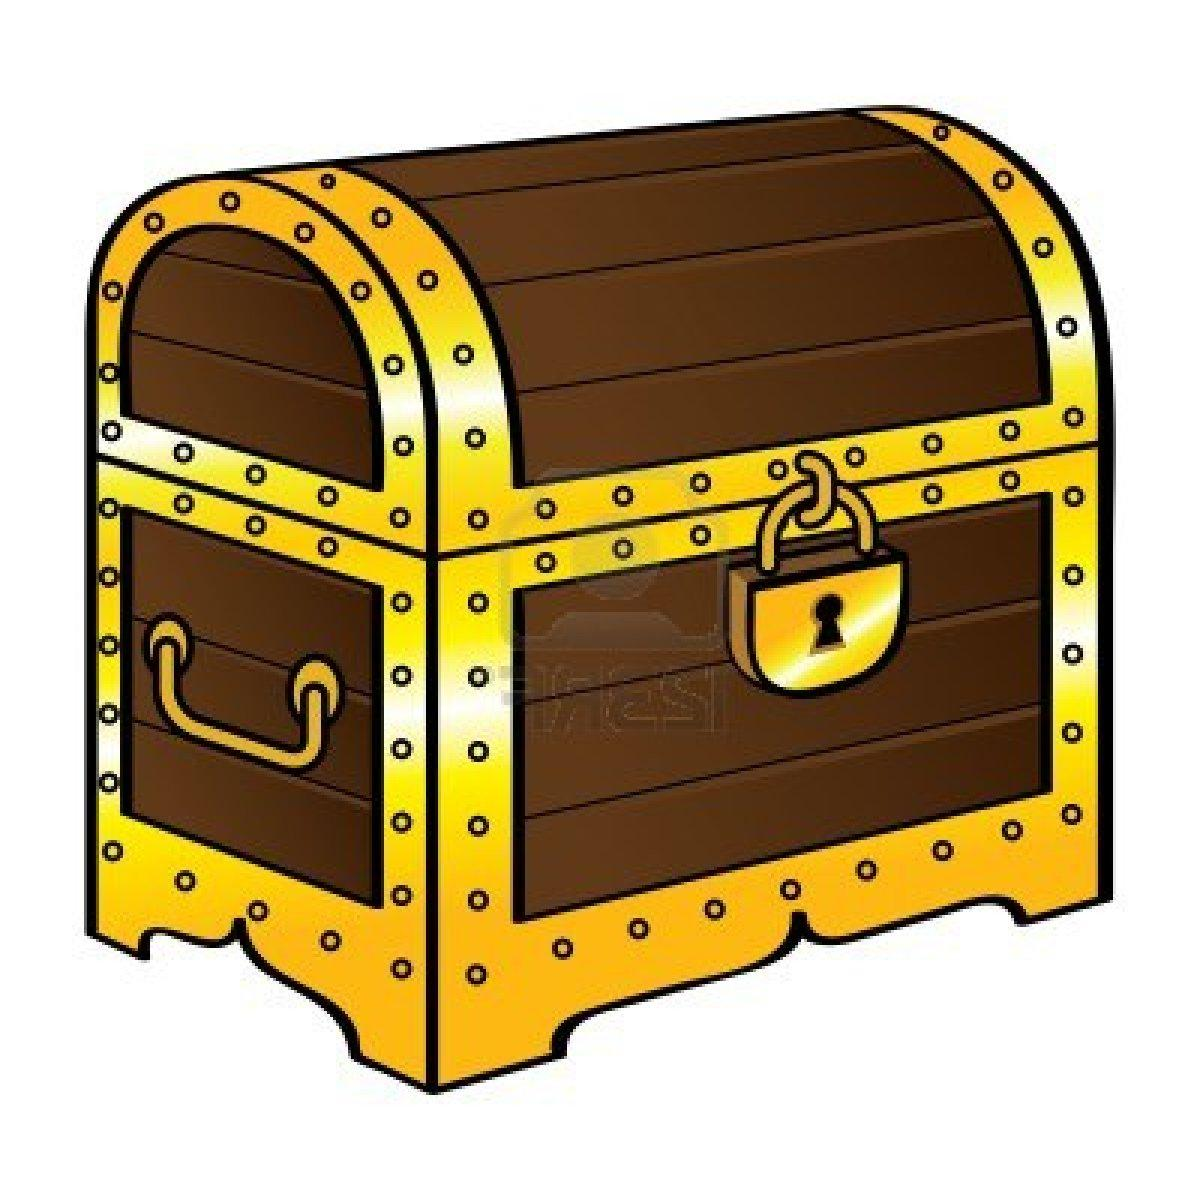 Closed treasure chest clipart png freeuse Treasure Chest Clipart | Free download best Treasure Chest Clipart ... png freeuse